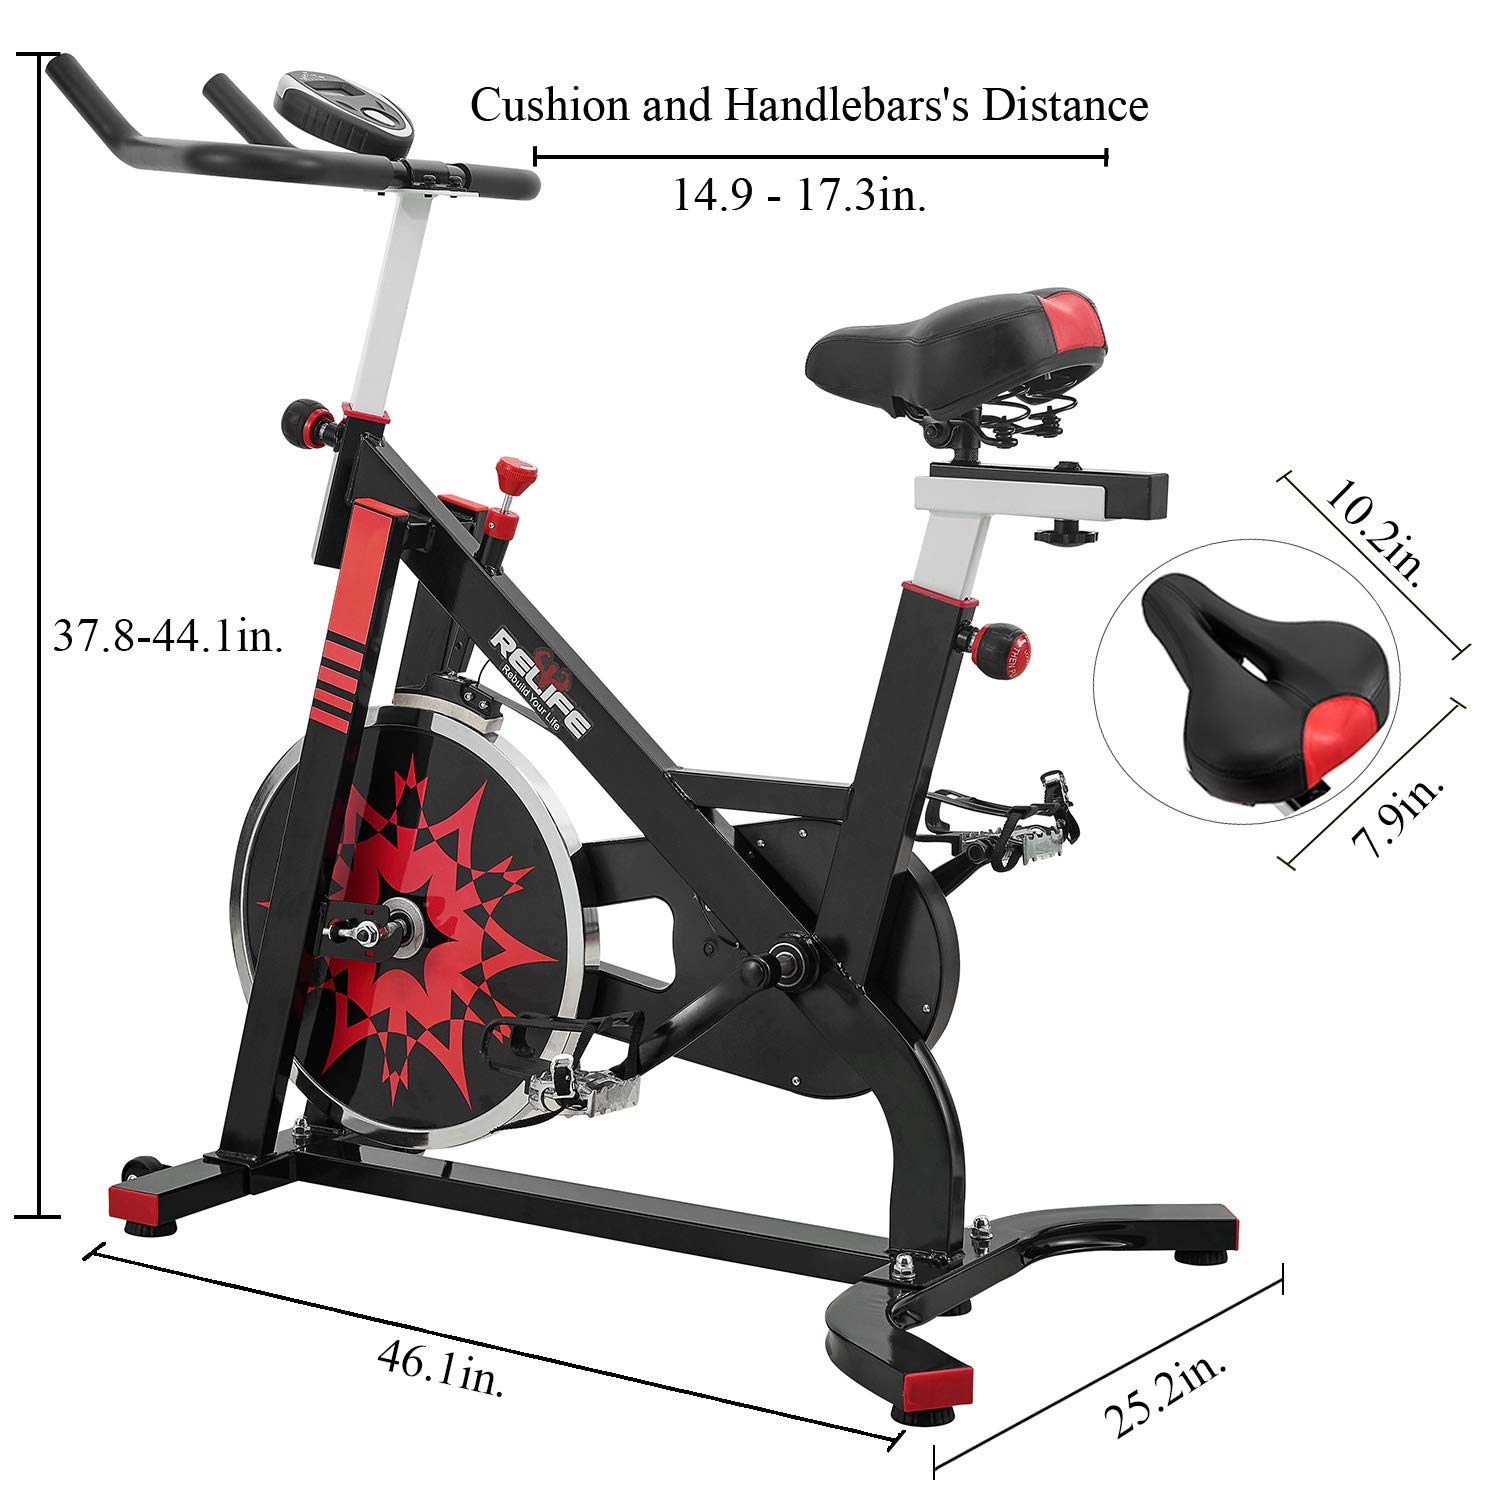 RELIFE REBUILD YOUR LIFE Spin Bike Stationary Indoor Cycling Gym Resistance Workout Home Gym Fitness Machine Exercise Bike by RELIFE REBUILD YOUR LIFE (Image #3)